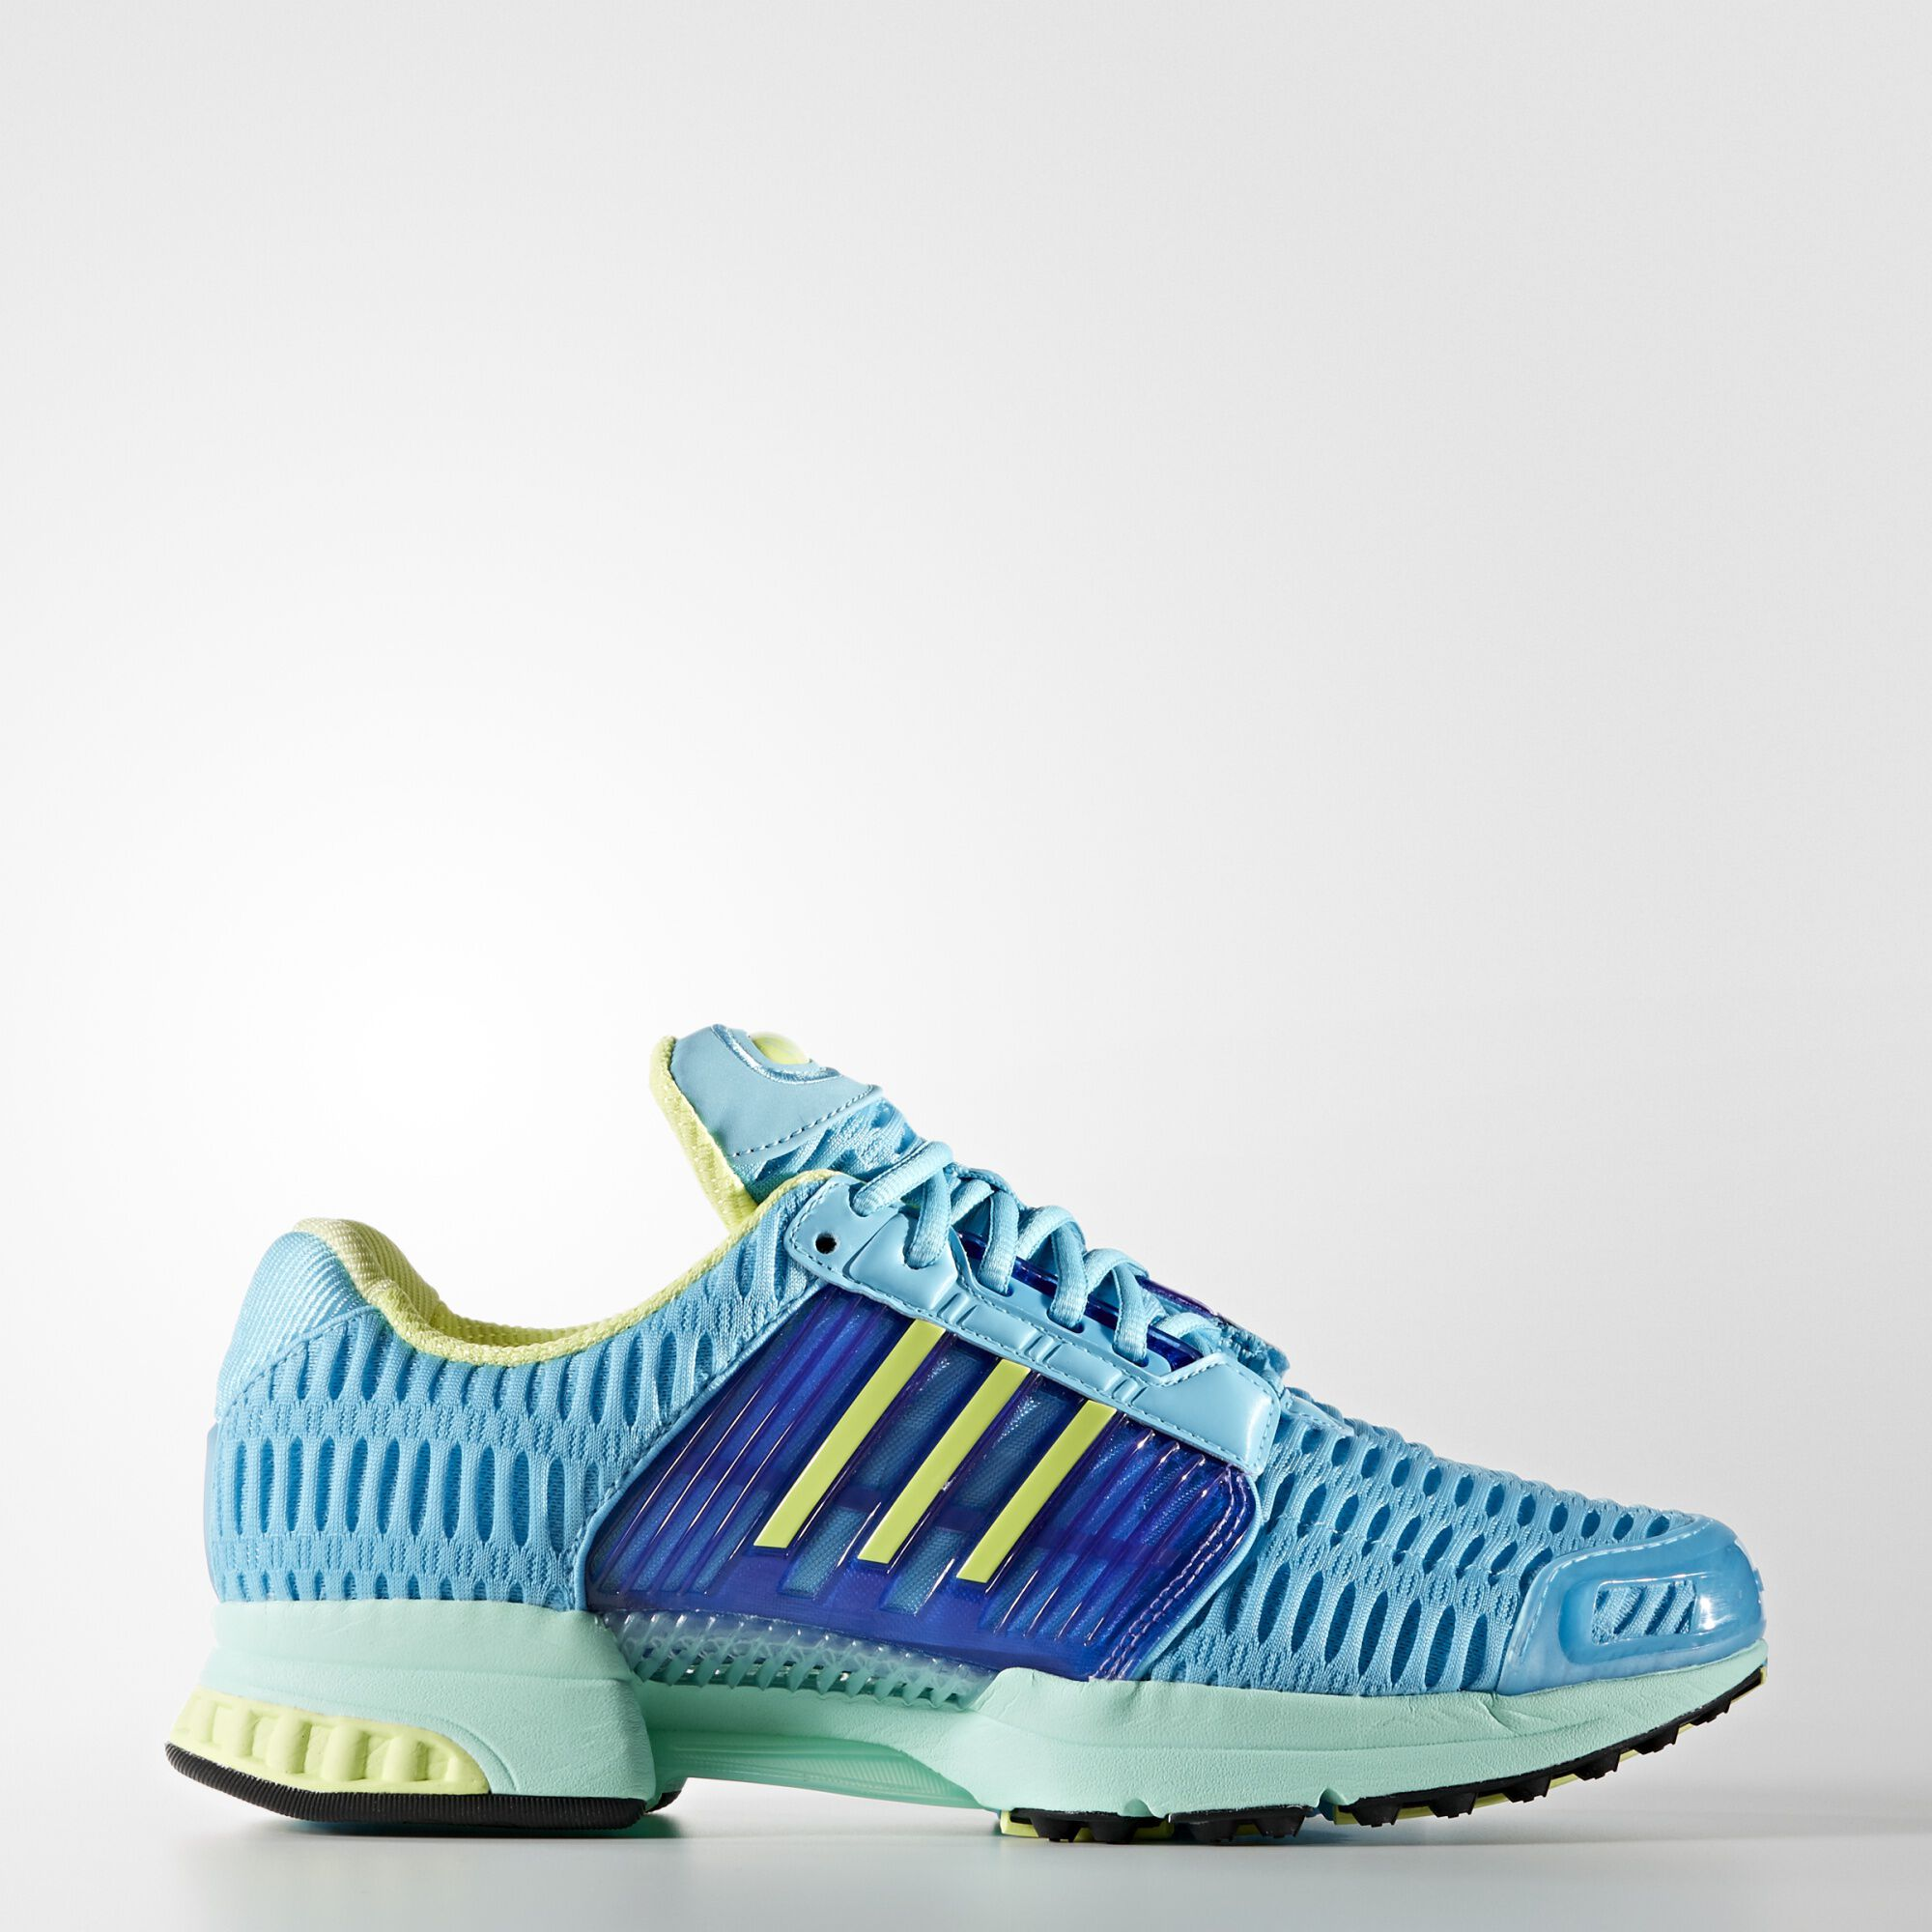 Addidas Climacool Shoes